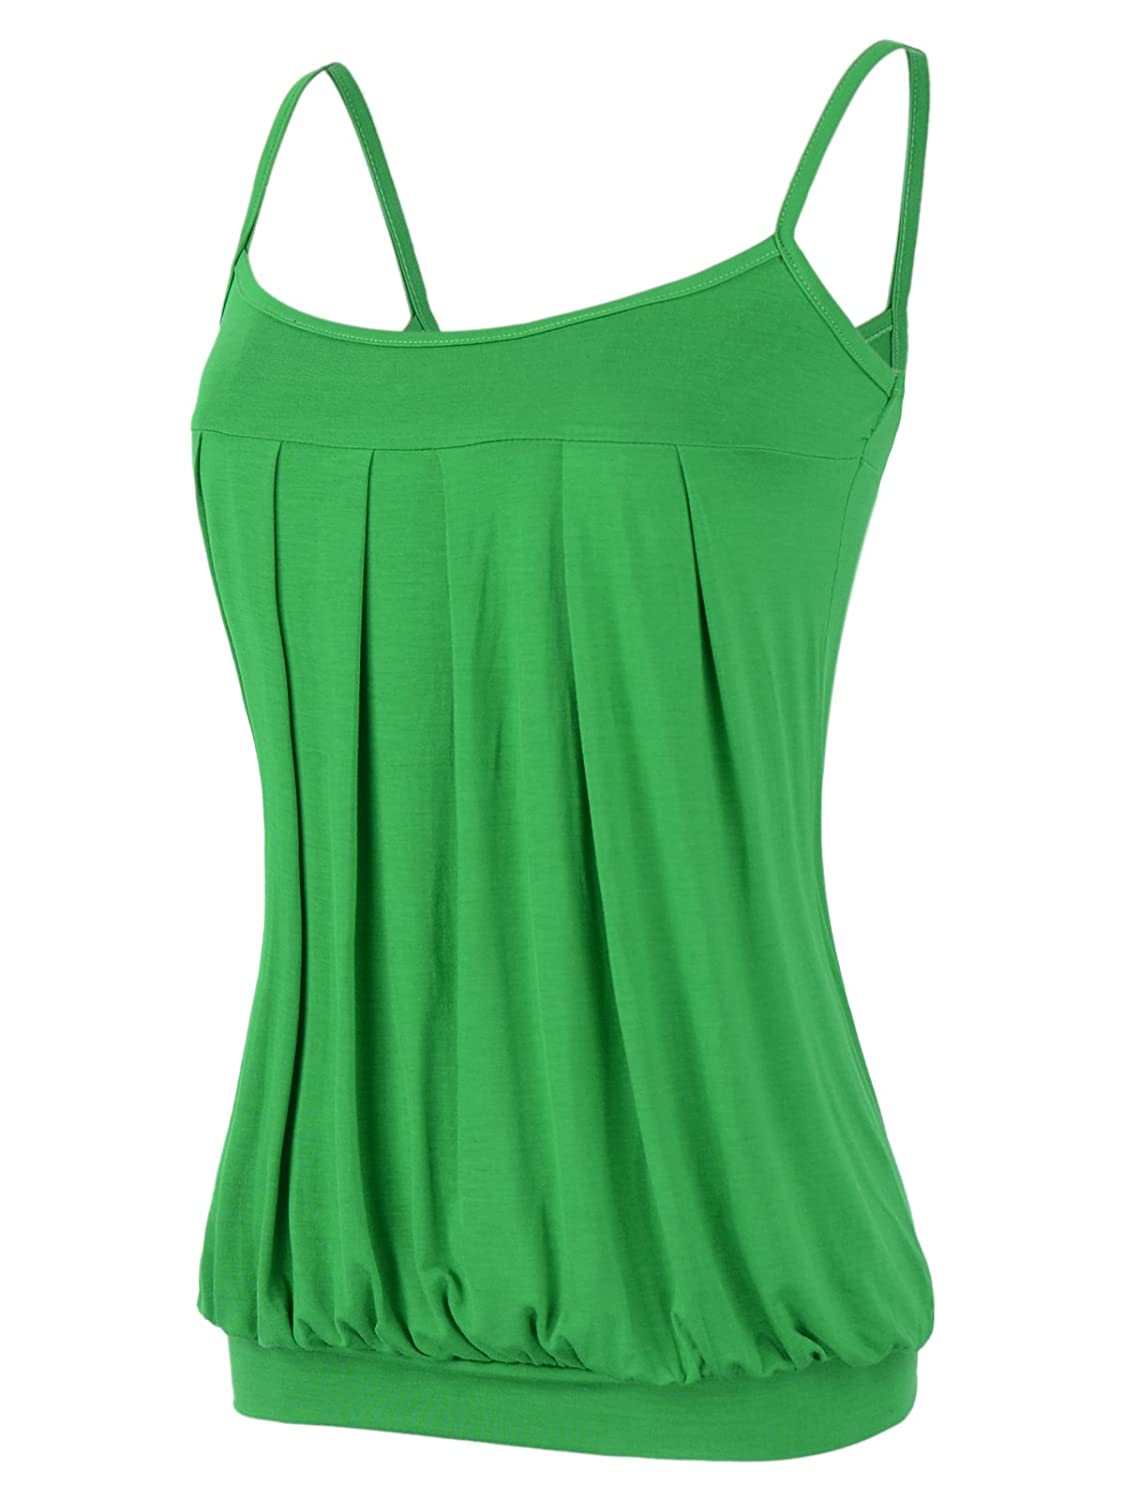 4169aa934973b0 Maggie Tang Women s Strappy Pleated Camisoles Basic Cami Top Pleated Tube  Top at Amazon Women s Clothing store